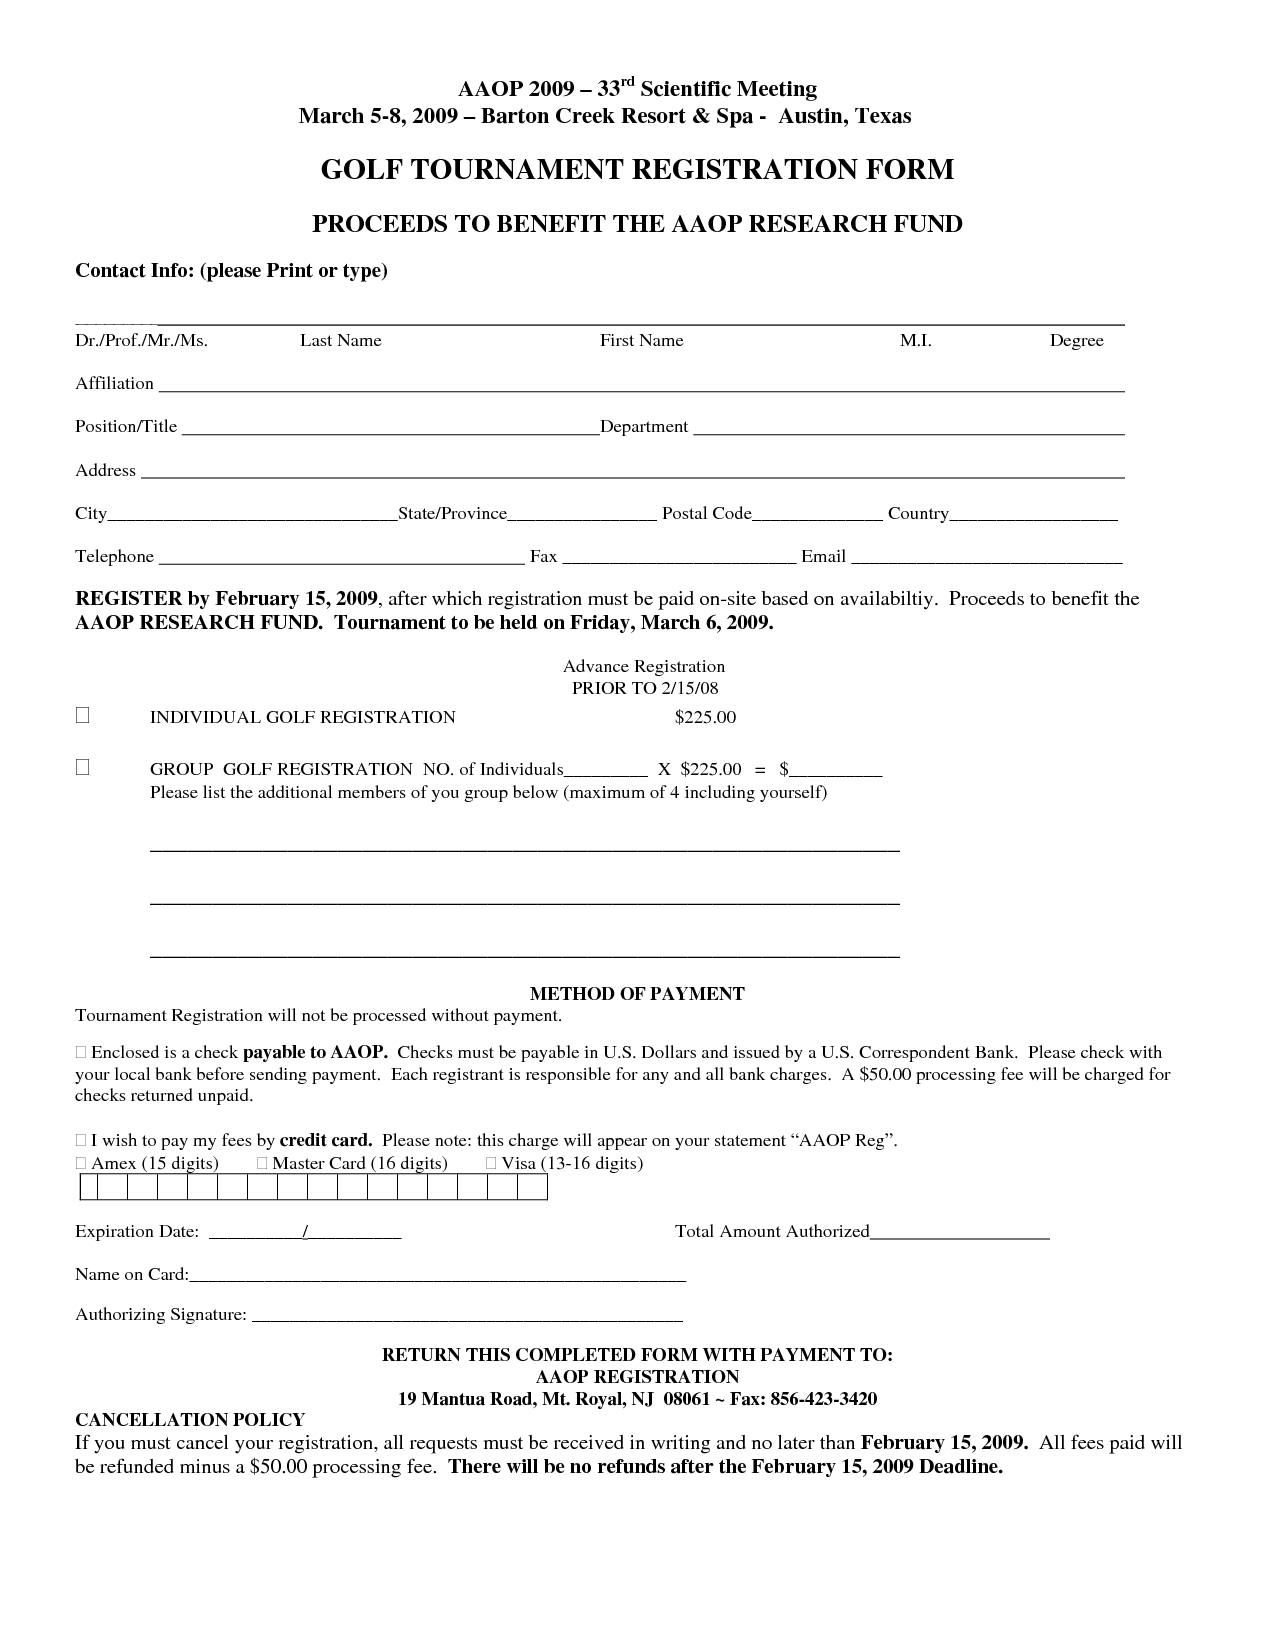 Golf tournament Sponsorship Letter Template - Free Registration form Template